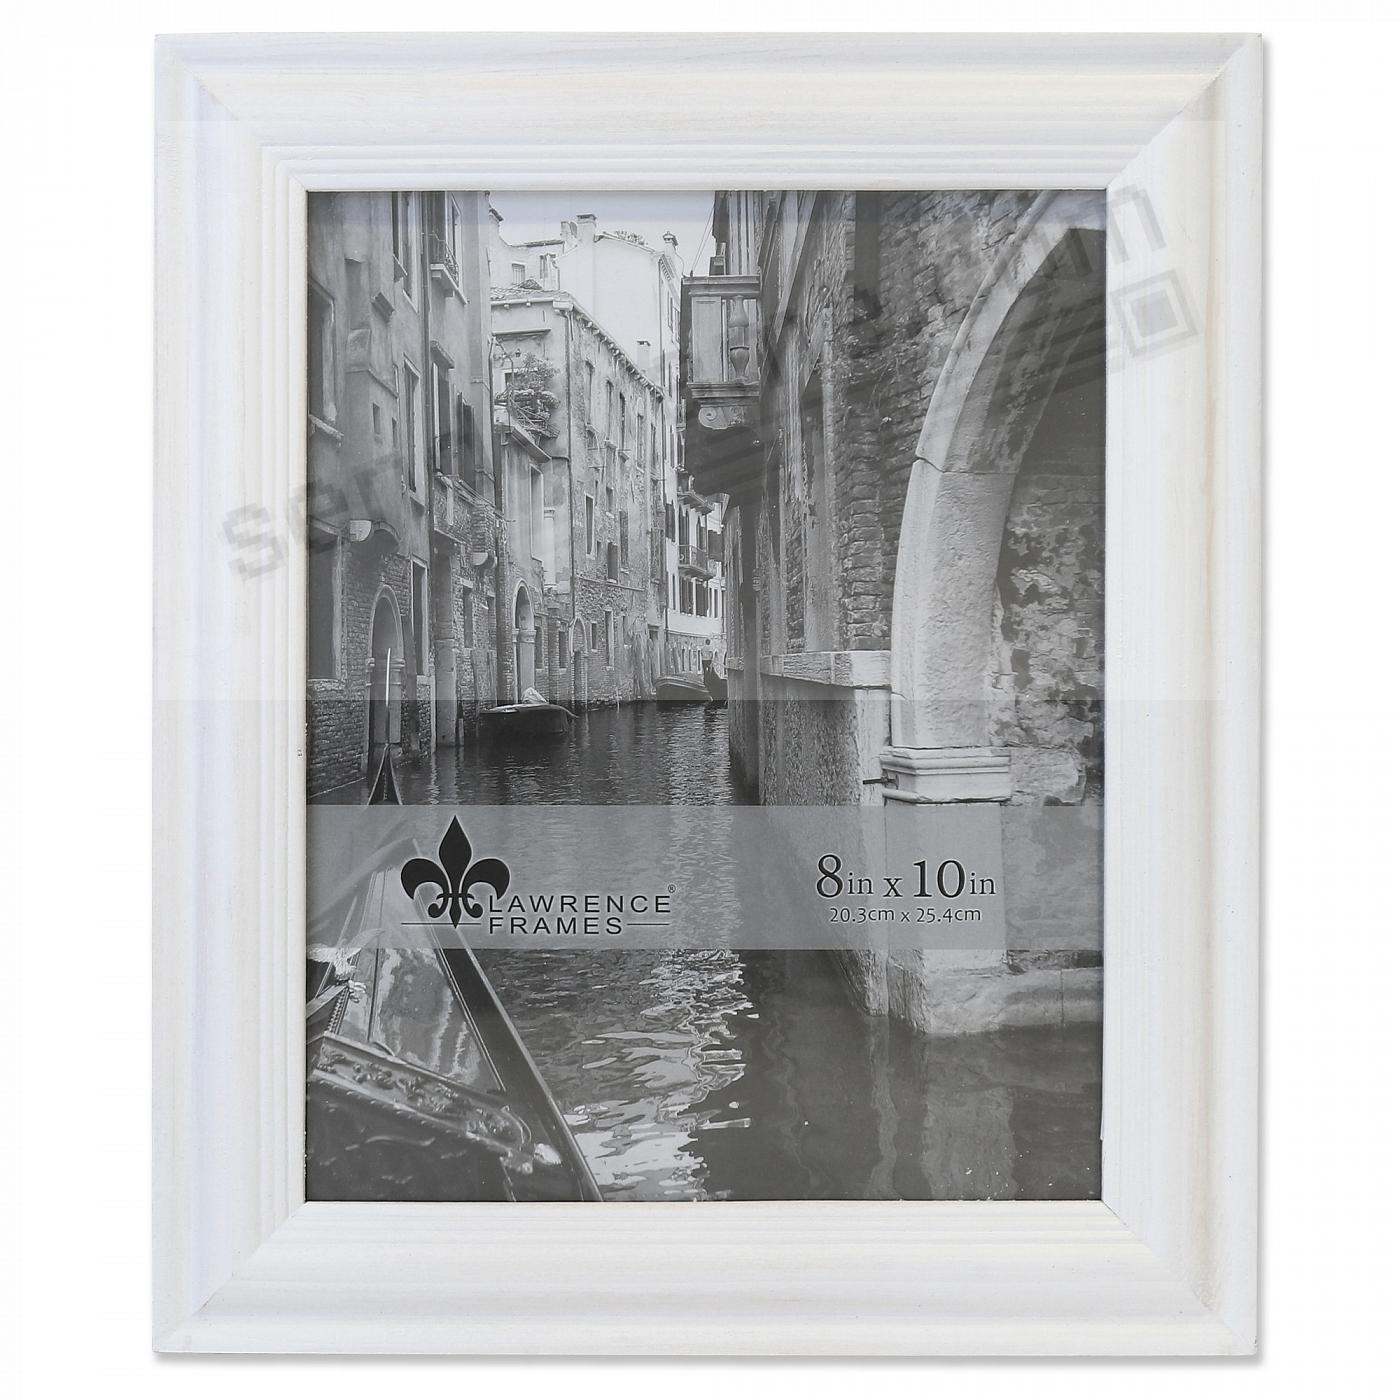 SUNWASHED WHITE 8x10 frame by Lawrence®